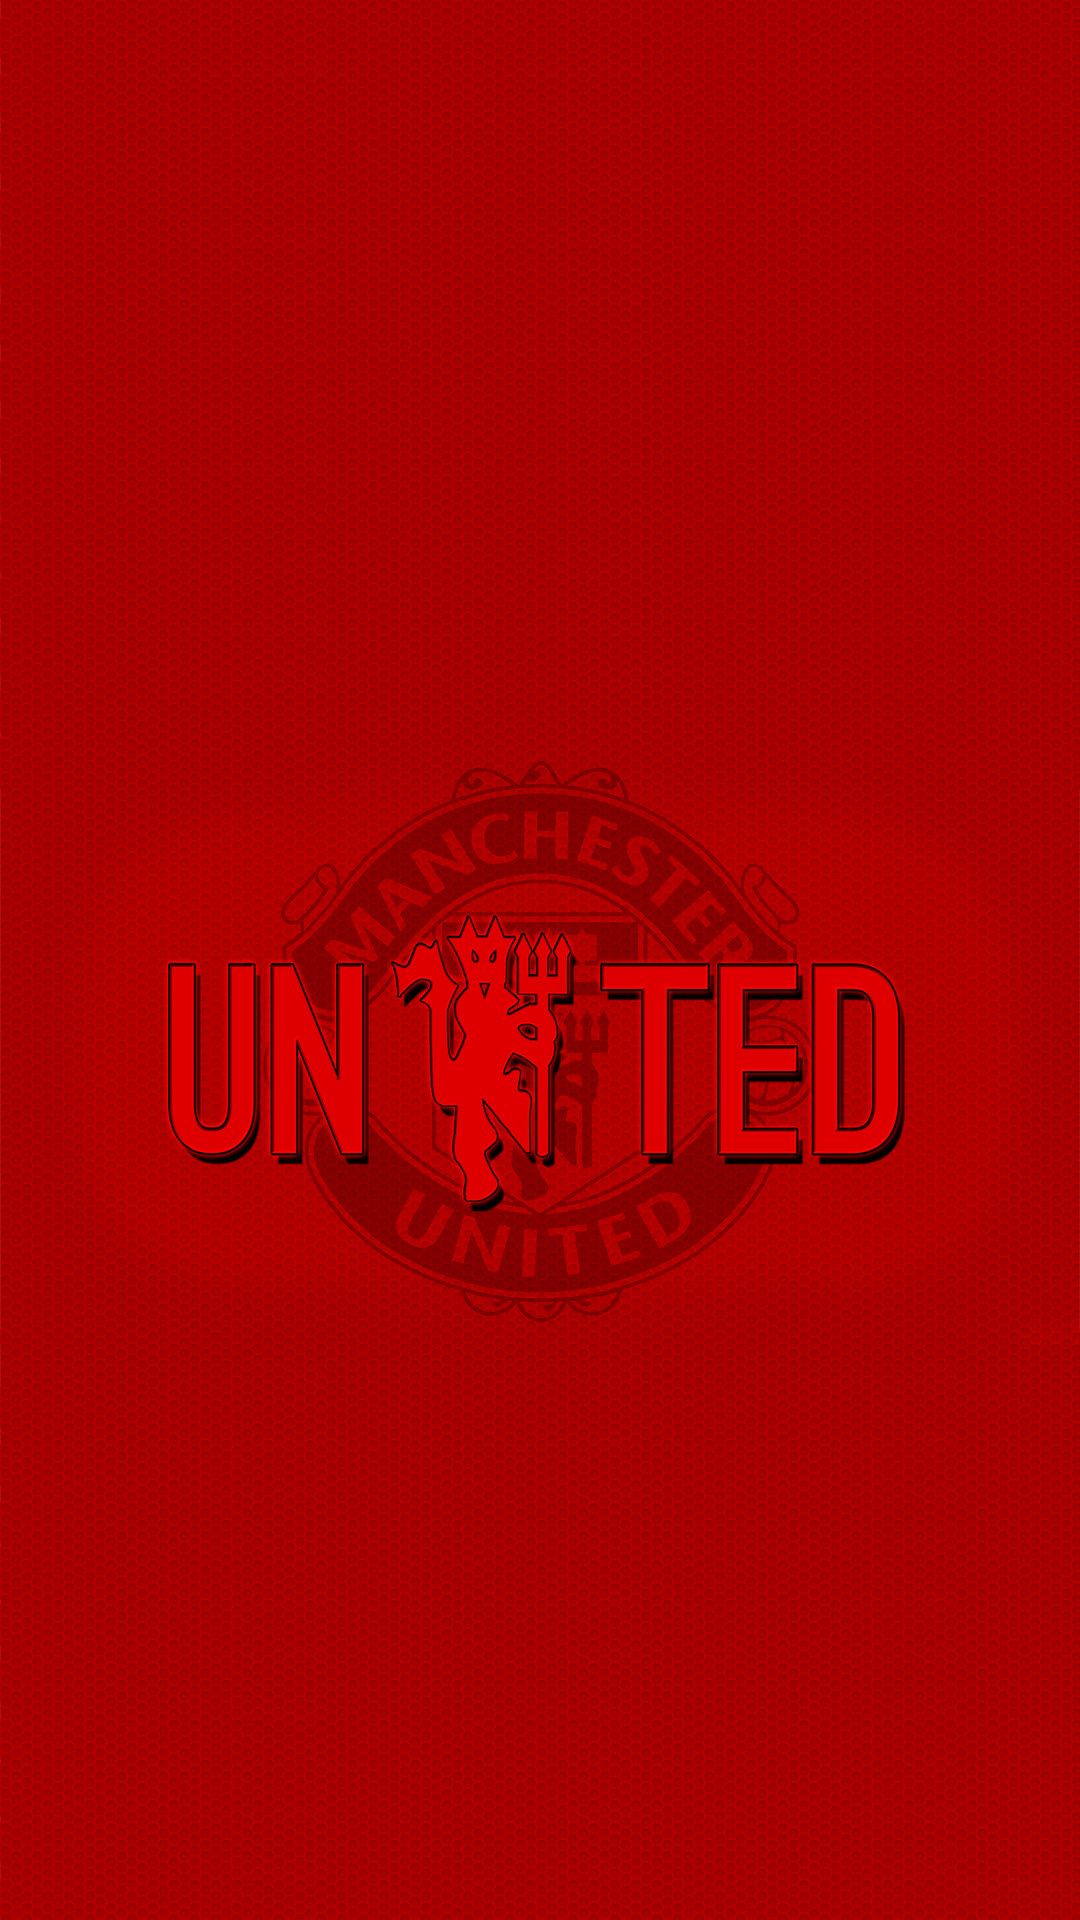 1080x1920 Manchester United.png